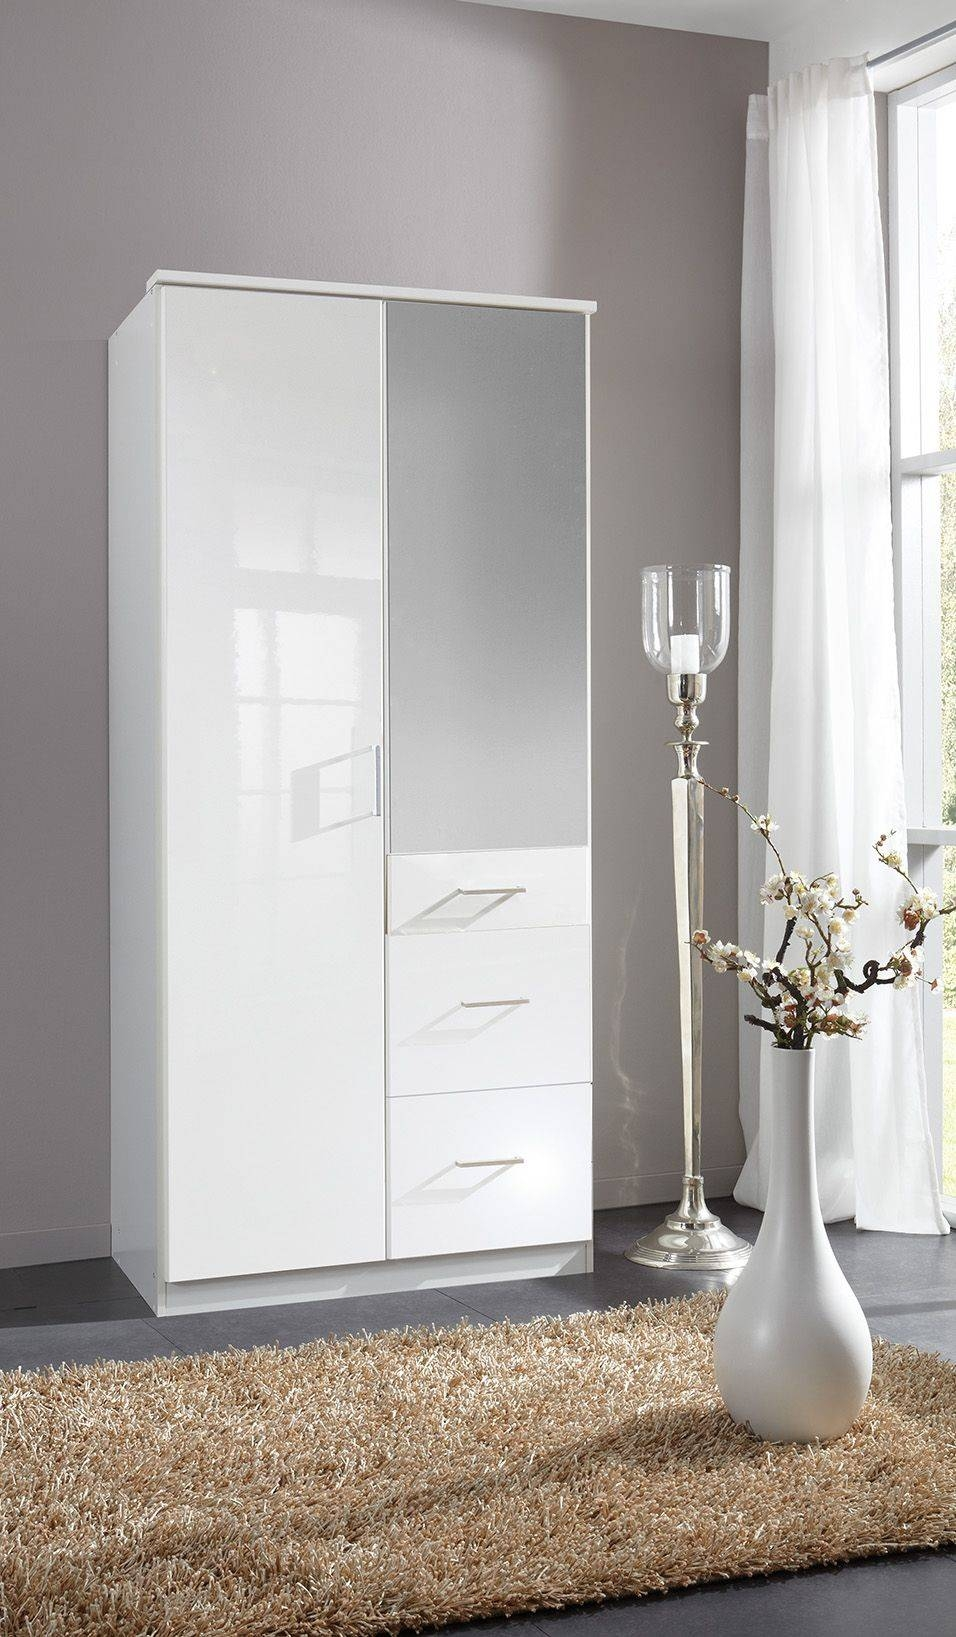 Clack High Gloss White Double Mirrored Wardrobe within White Gloss Mirrored Wardrobes (Image 4 of 15)